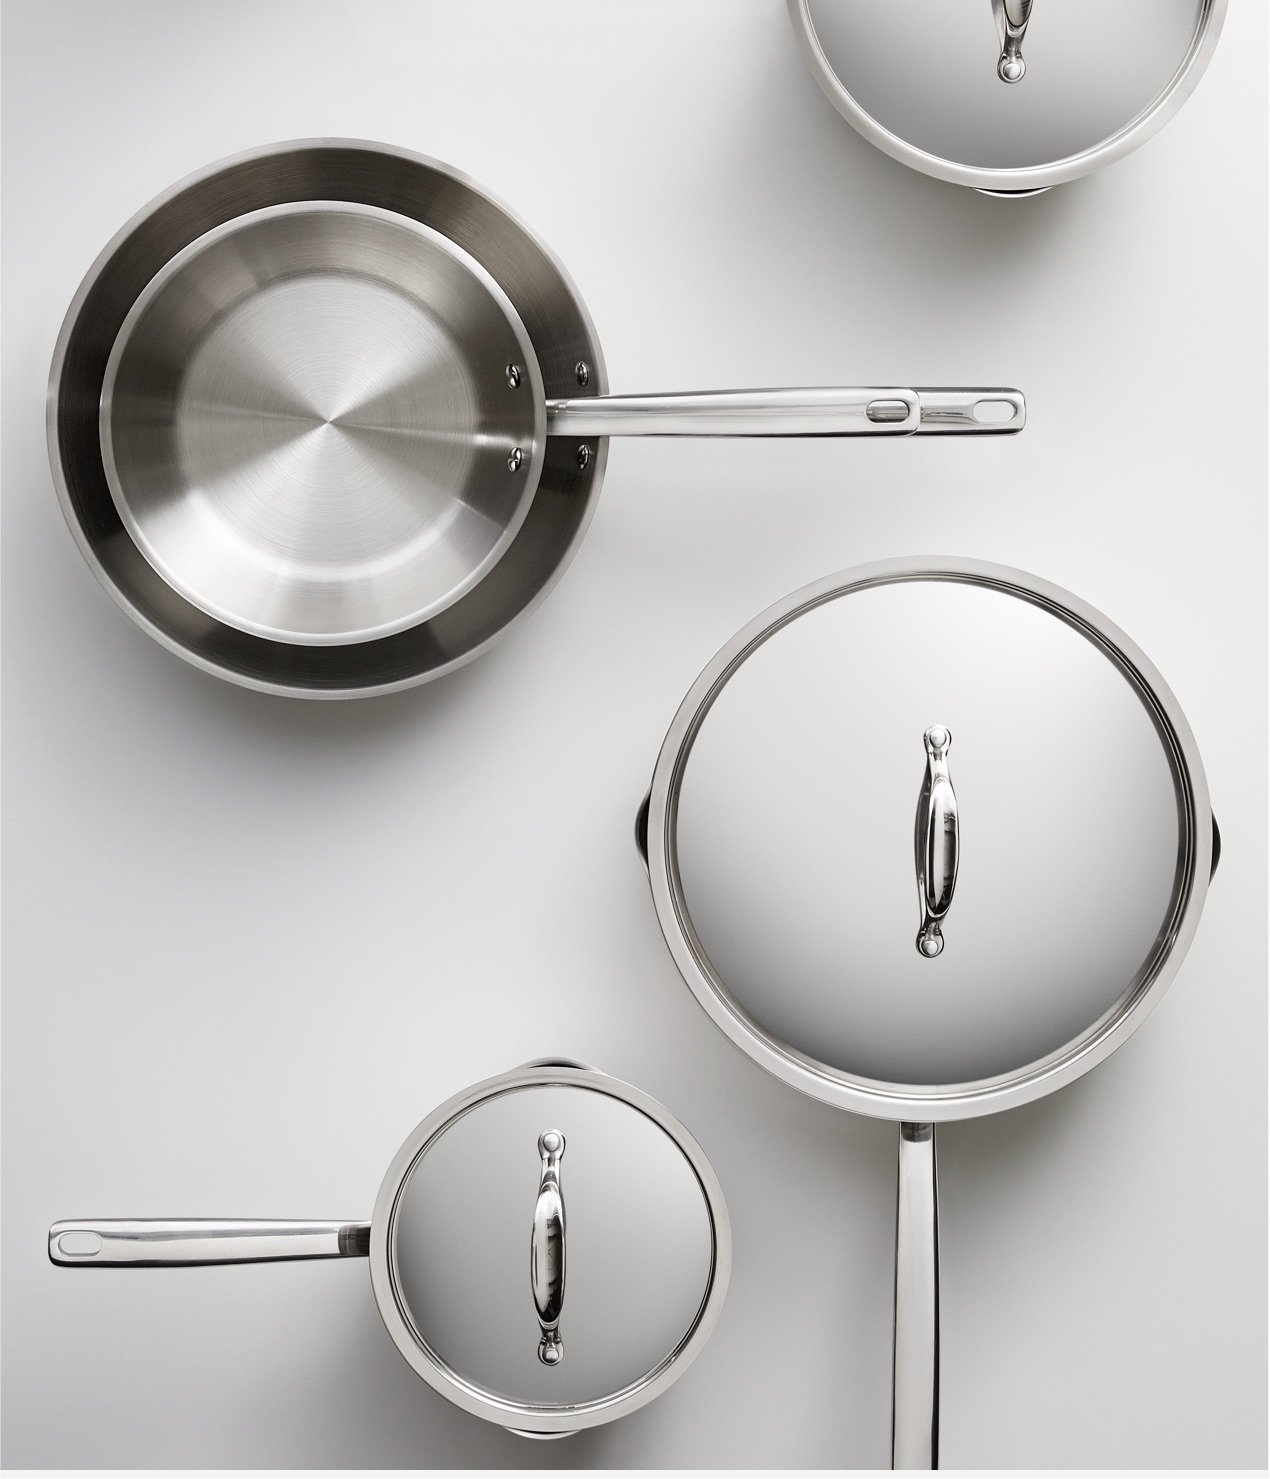 A variety of covered and uncovered stainless steel cookware